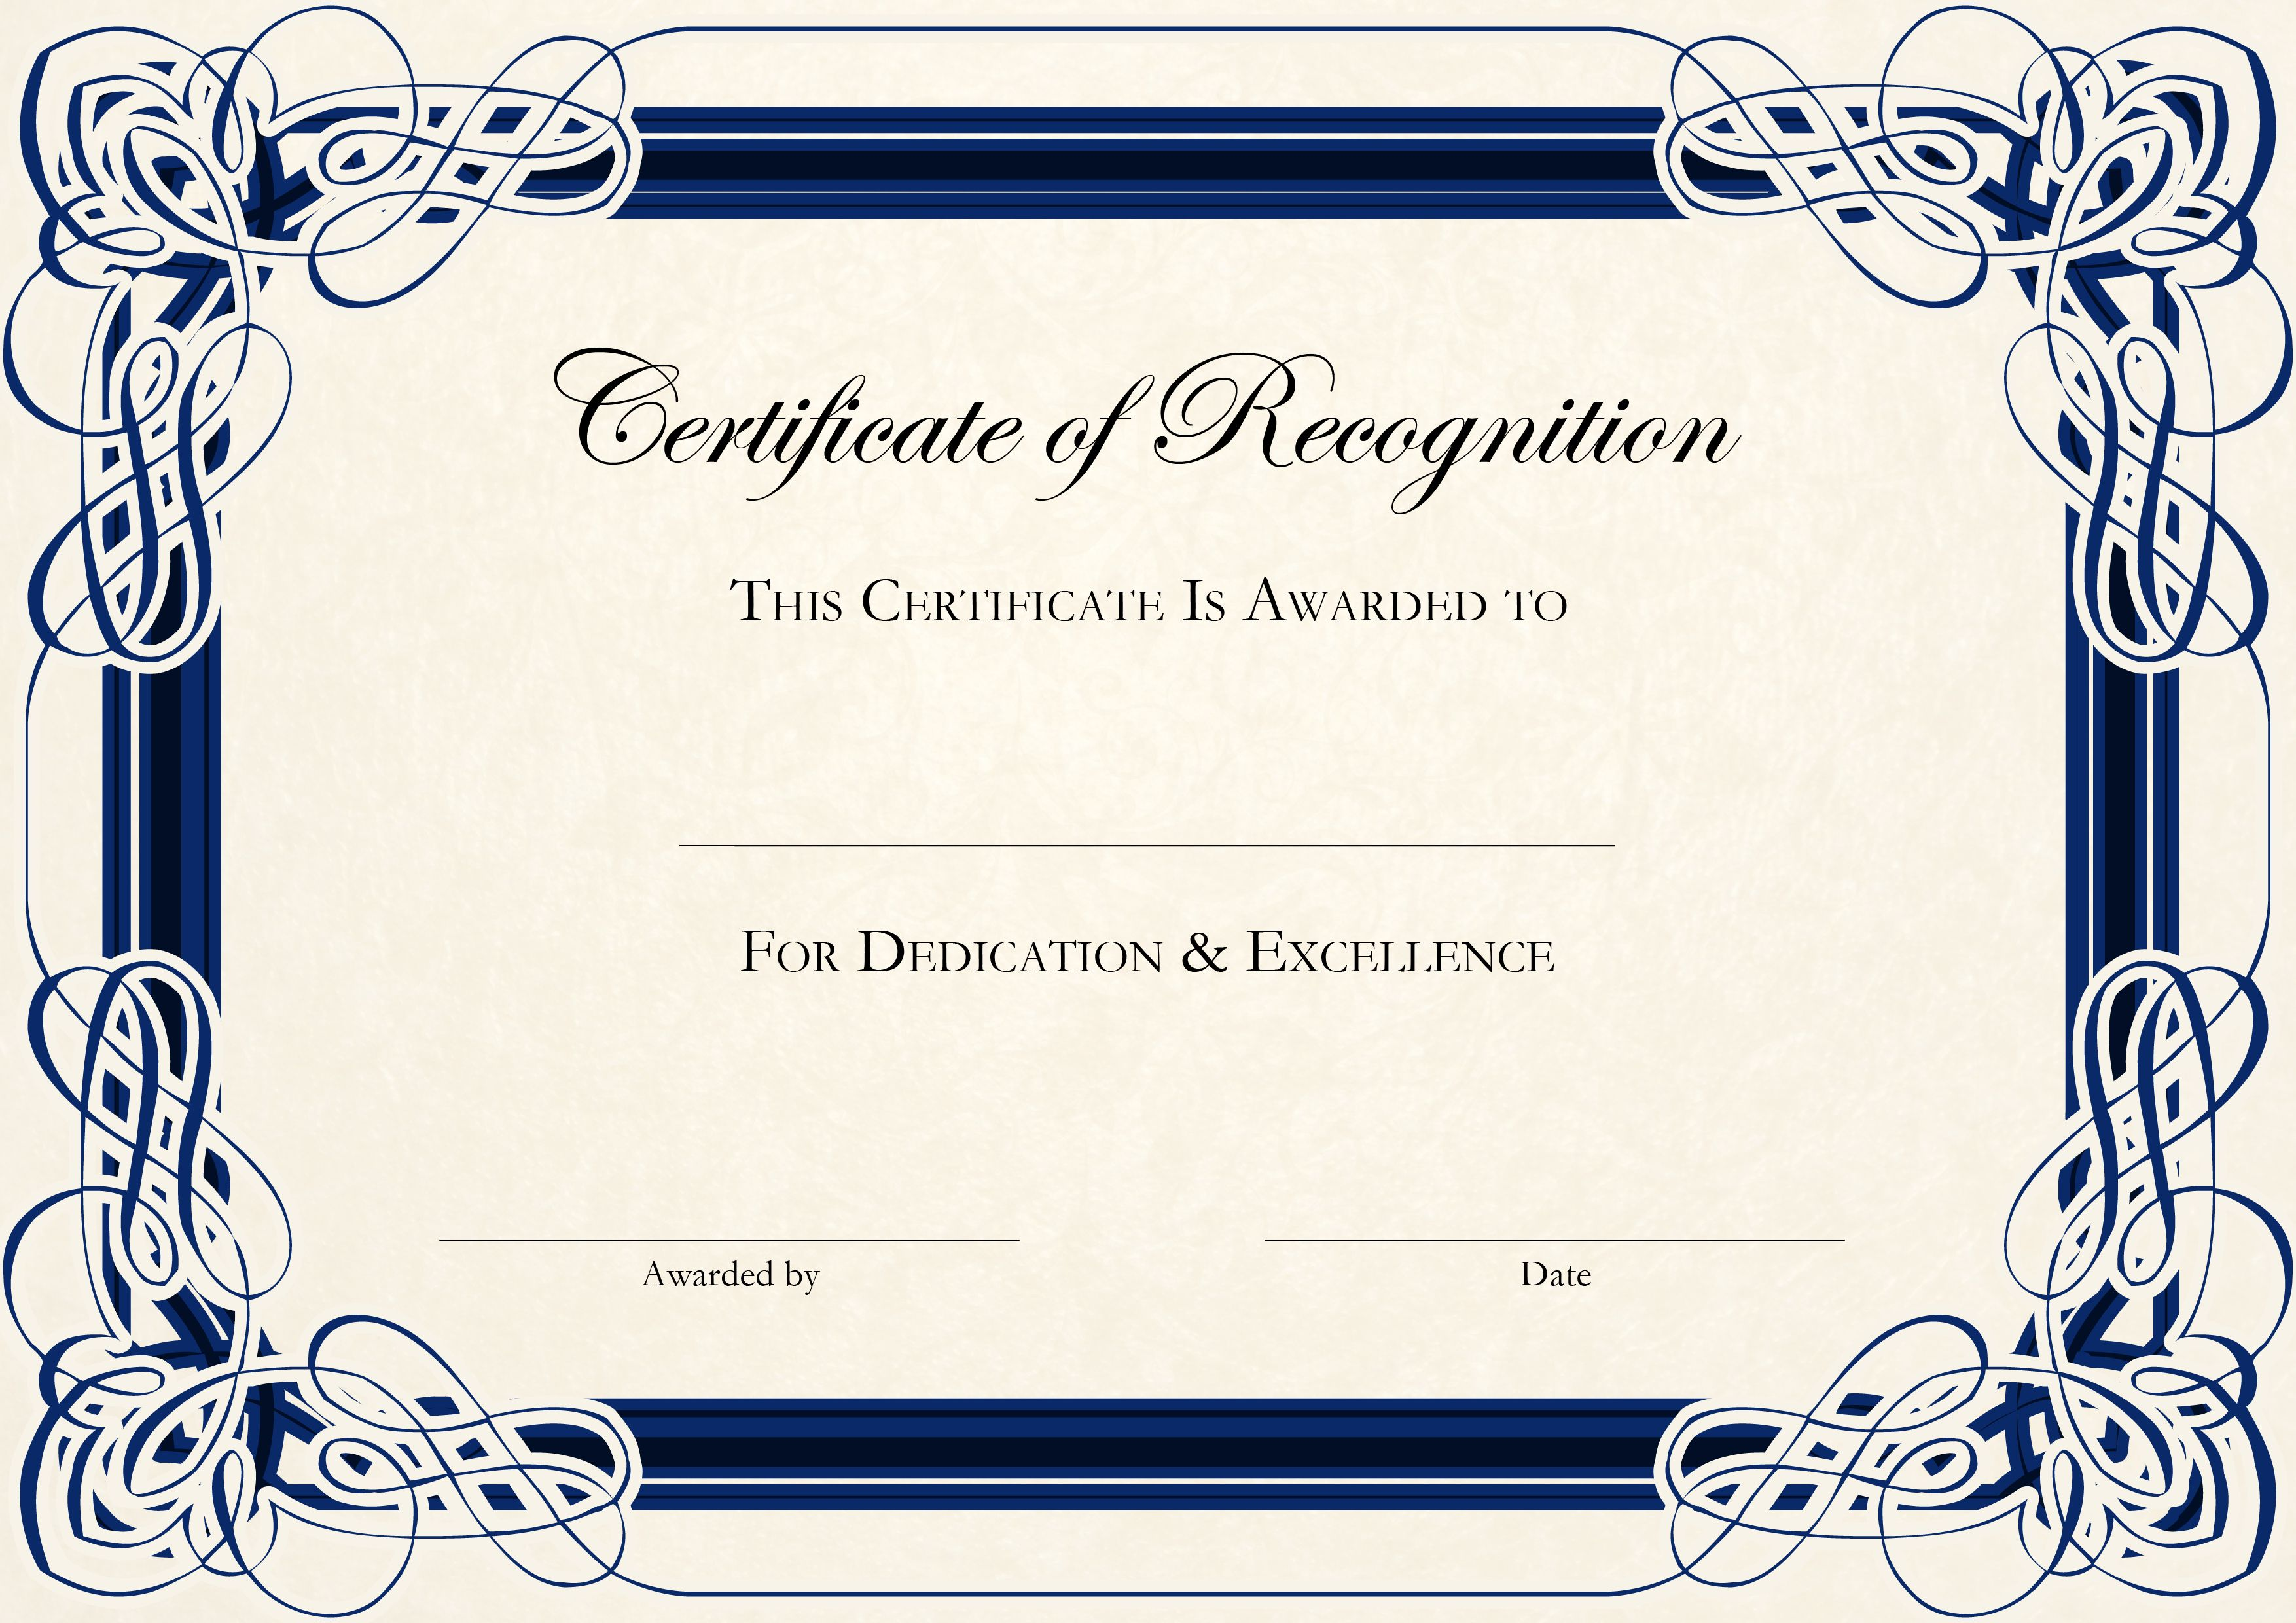 Certificate clipart certificate recognition. Sports cetificate of a